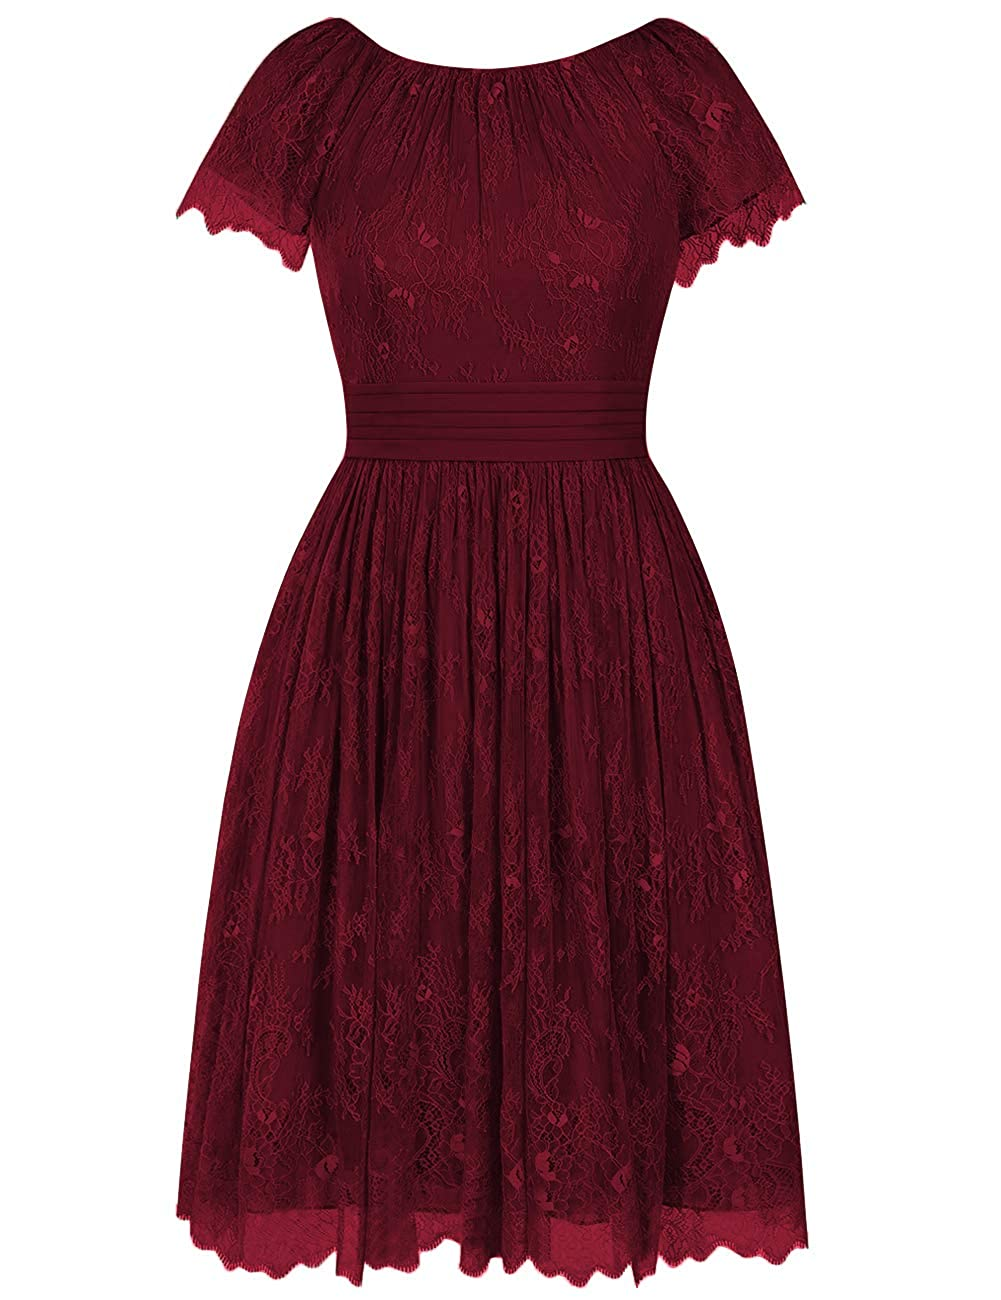 Burgundy Short Bridesmaid Dresses Flora Lace Cocktail Prom Gowns Homecoming Formal Party Dress